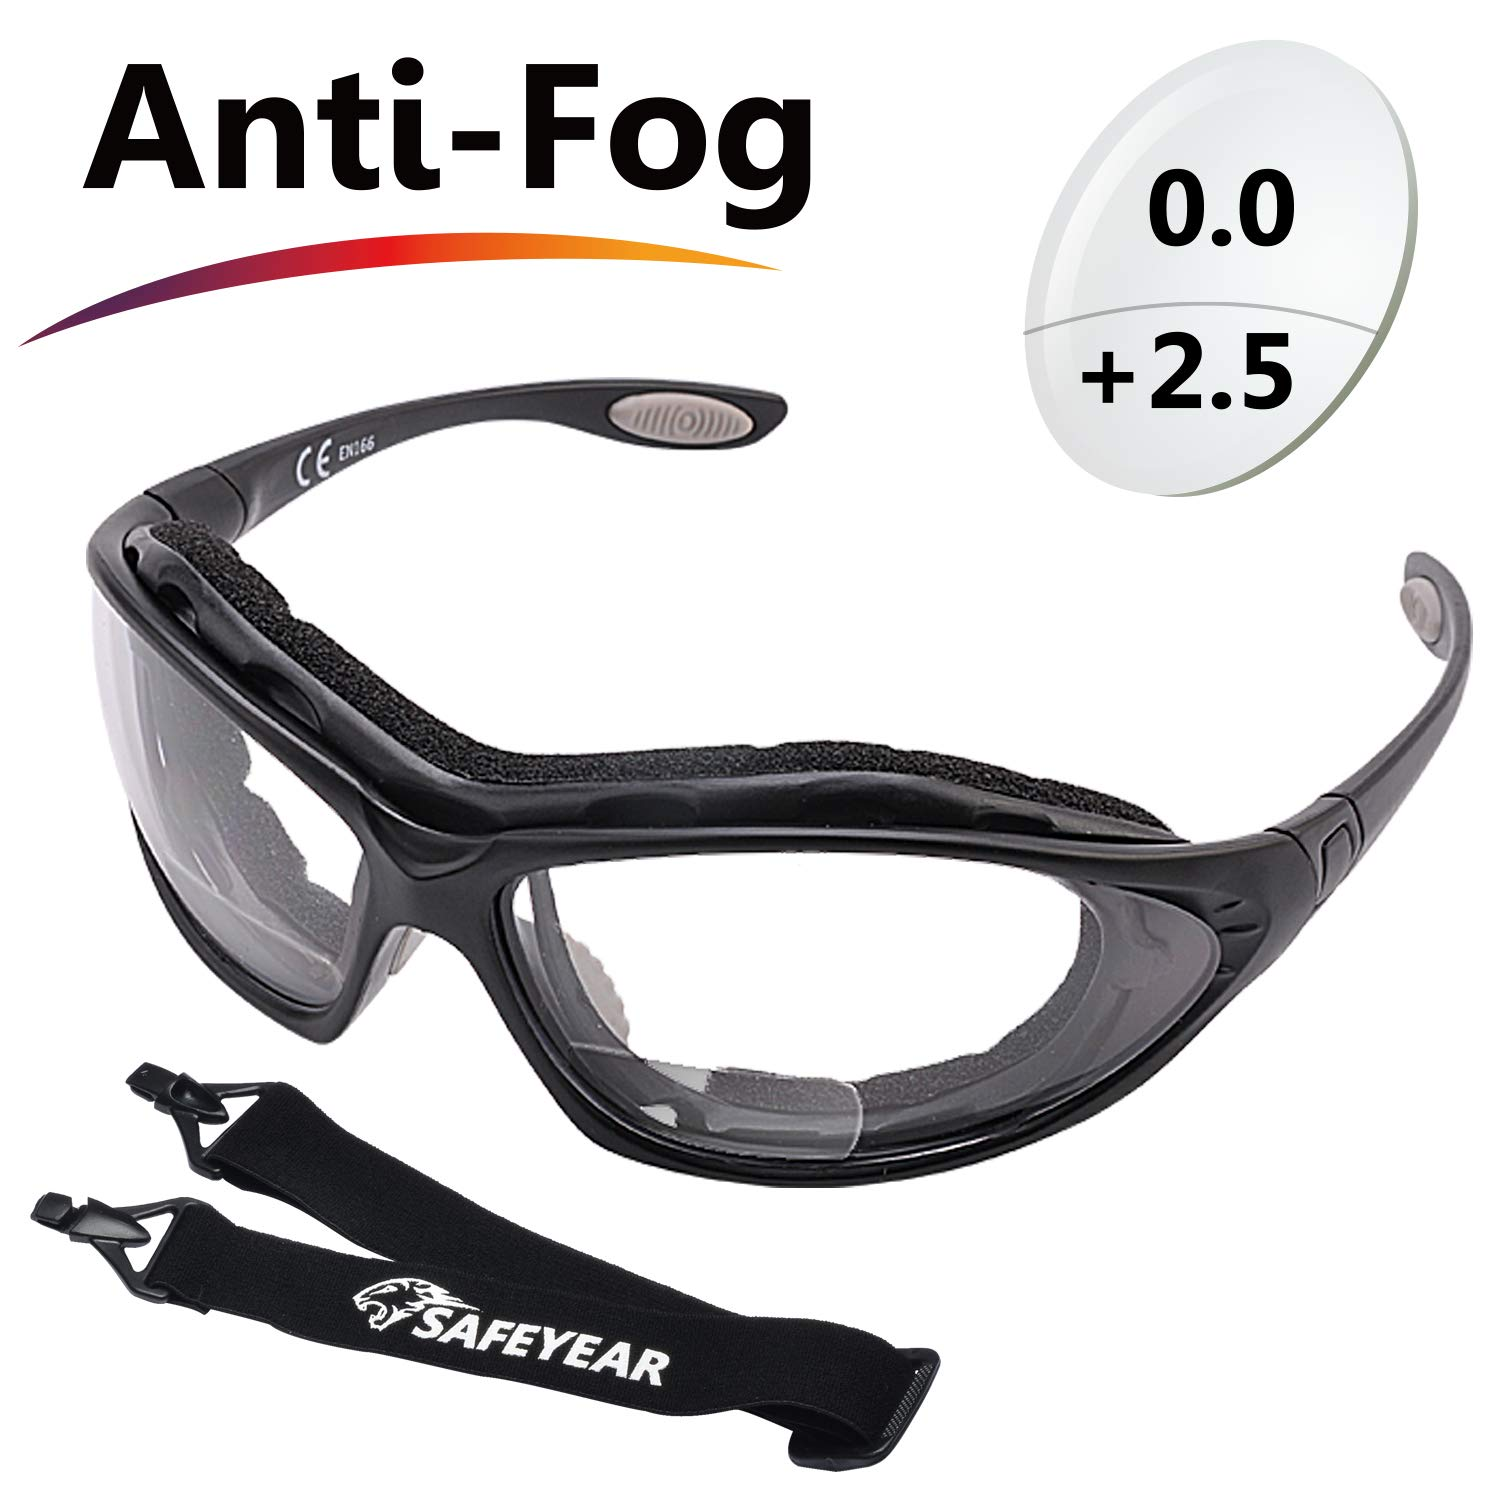 Eye Protection Work Infield Mesh Plastic Airsoft Goggles for DIY Job Lab etc Safeyear Anti-fog Ladies Safety Glasses UV Protective PPE Airsoft Glasses Women SG010 EN166 Wraparound Safety Goggles